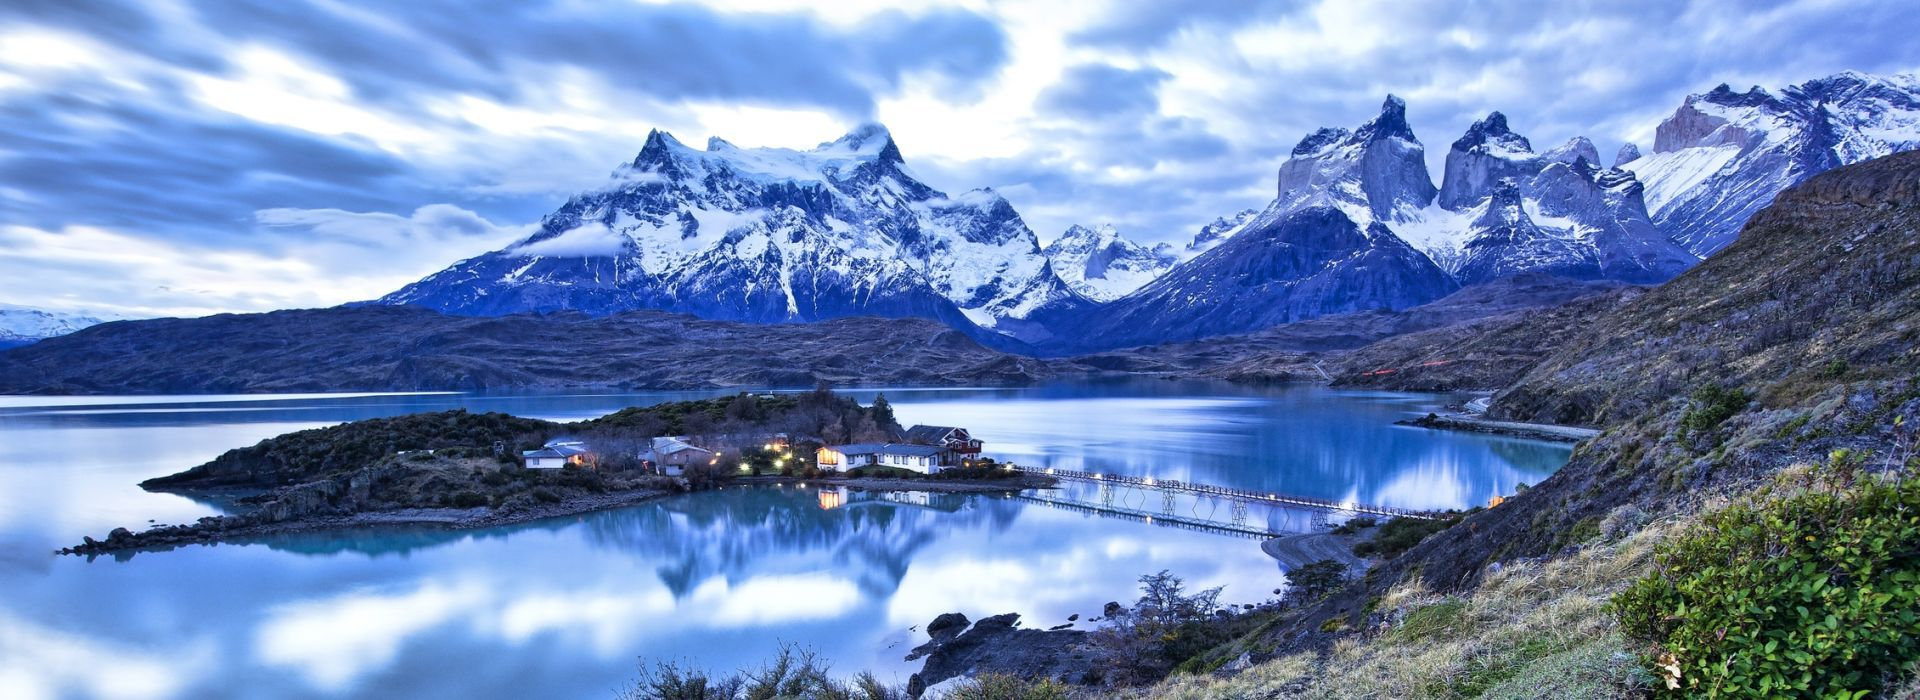 Special interests and hobbies Tours in Chile